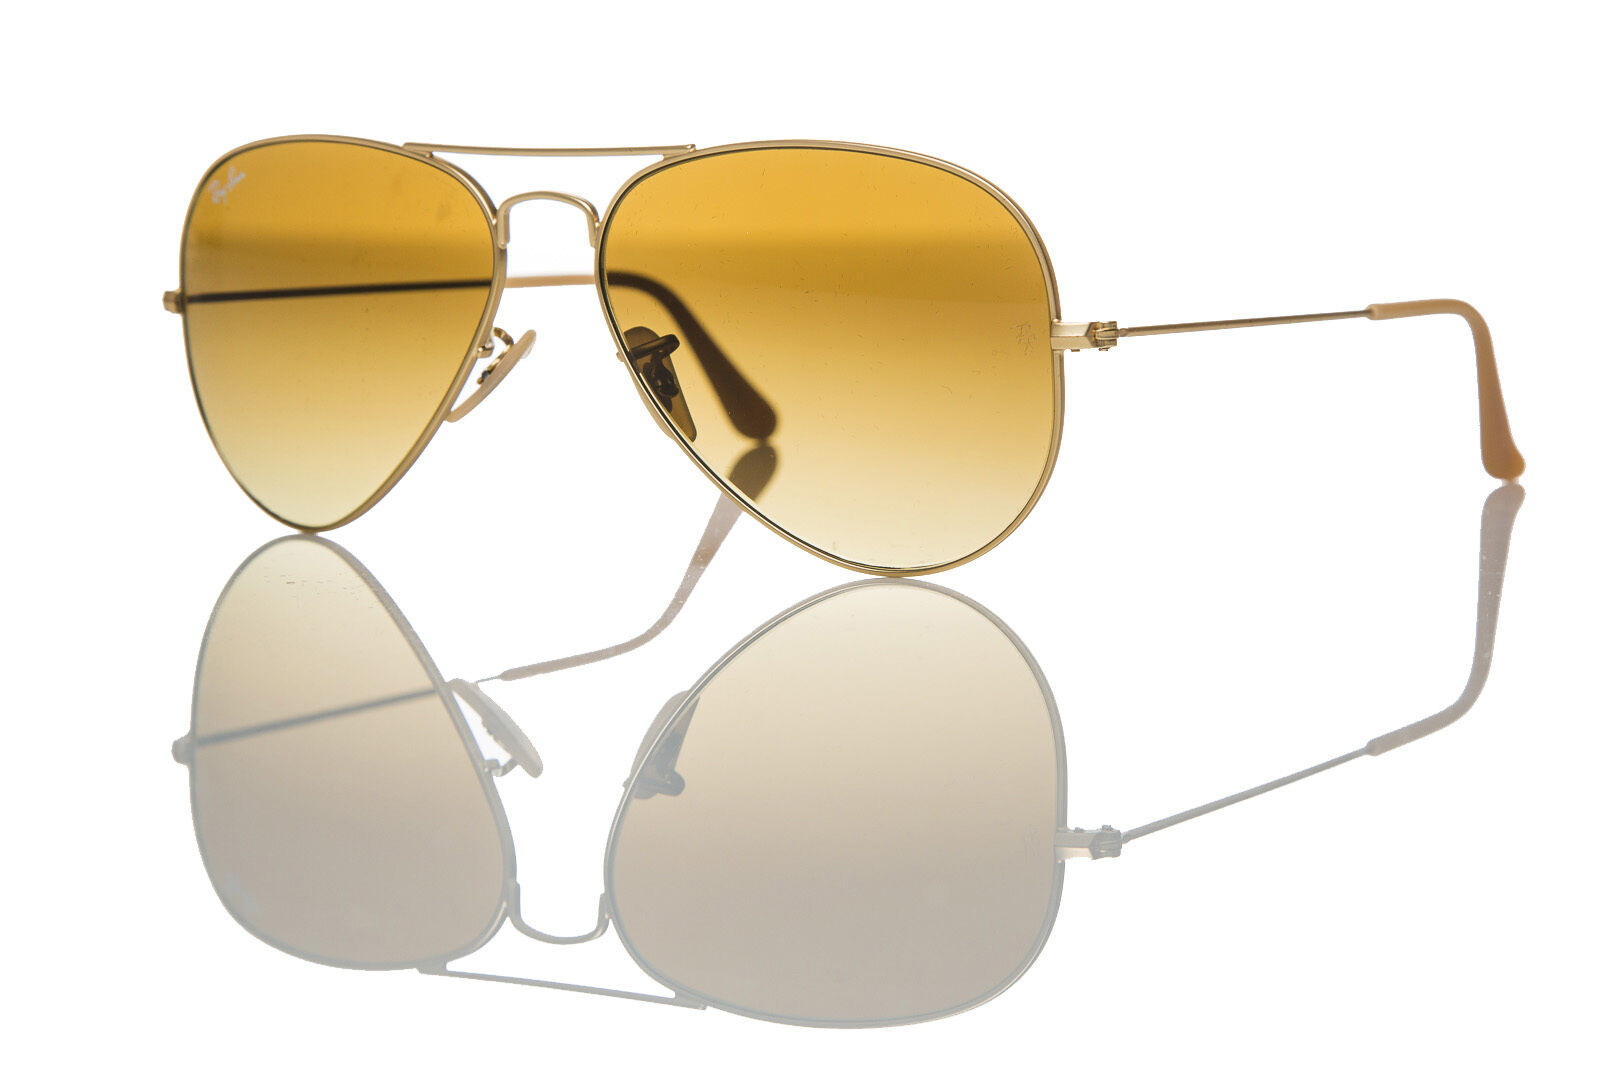 e782ad09cd1 Details about Authentic Ray-Ban Aviator Sunglasses RB 3025 112 85 Matte  Gold Brown Shaded 58mm